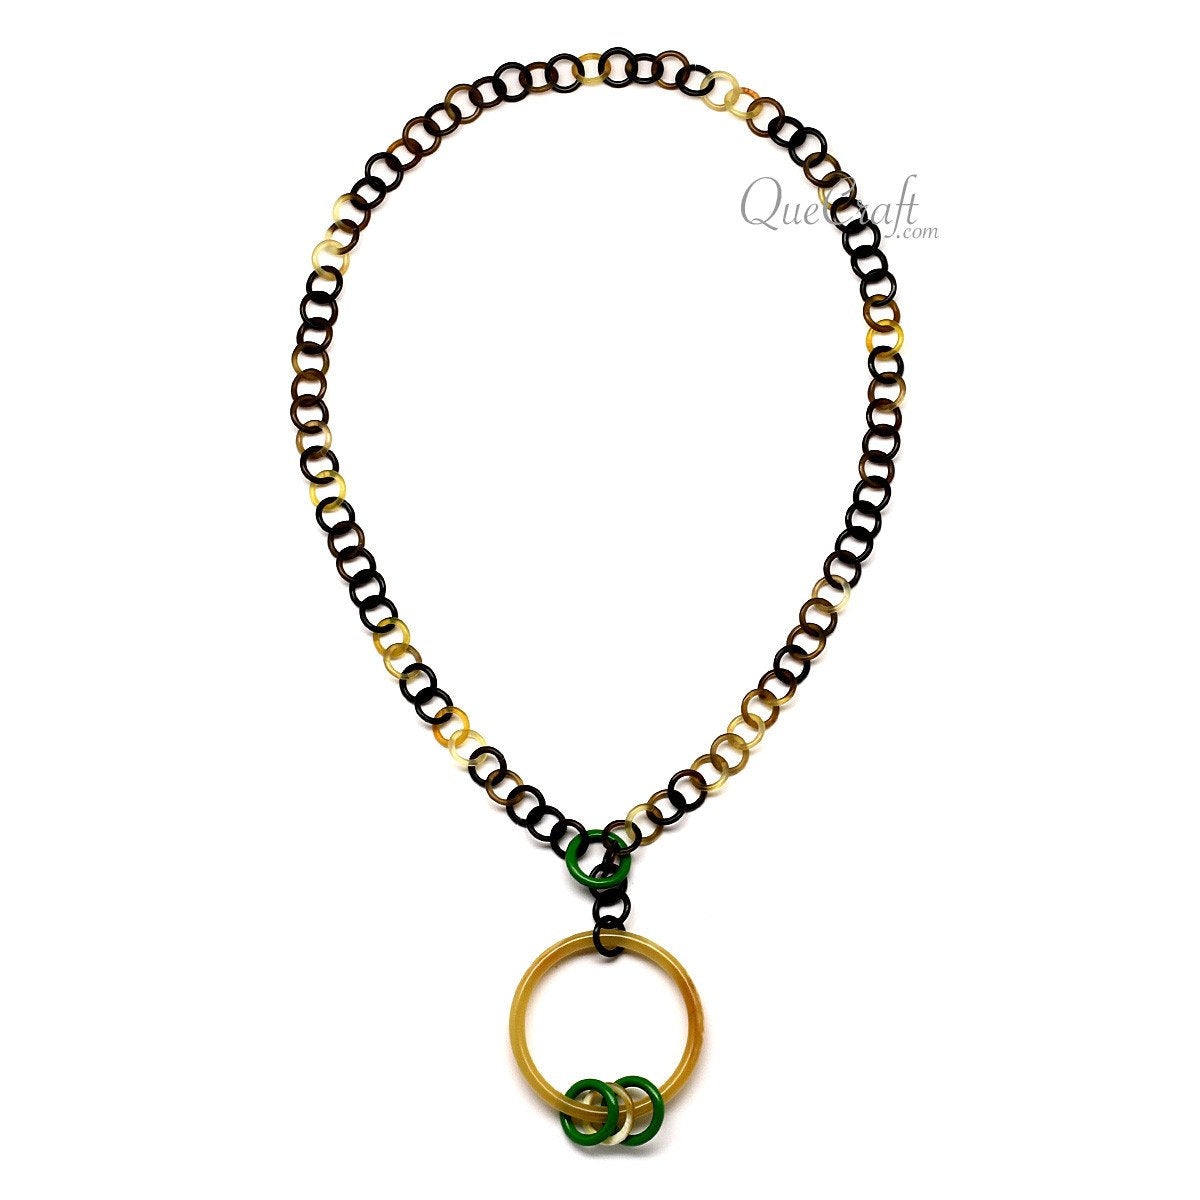 Horn & Lacquer Chain Necklace #12389 - HORN.JEWELRY